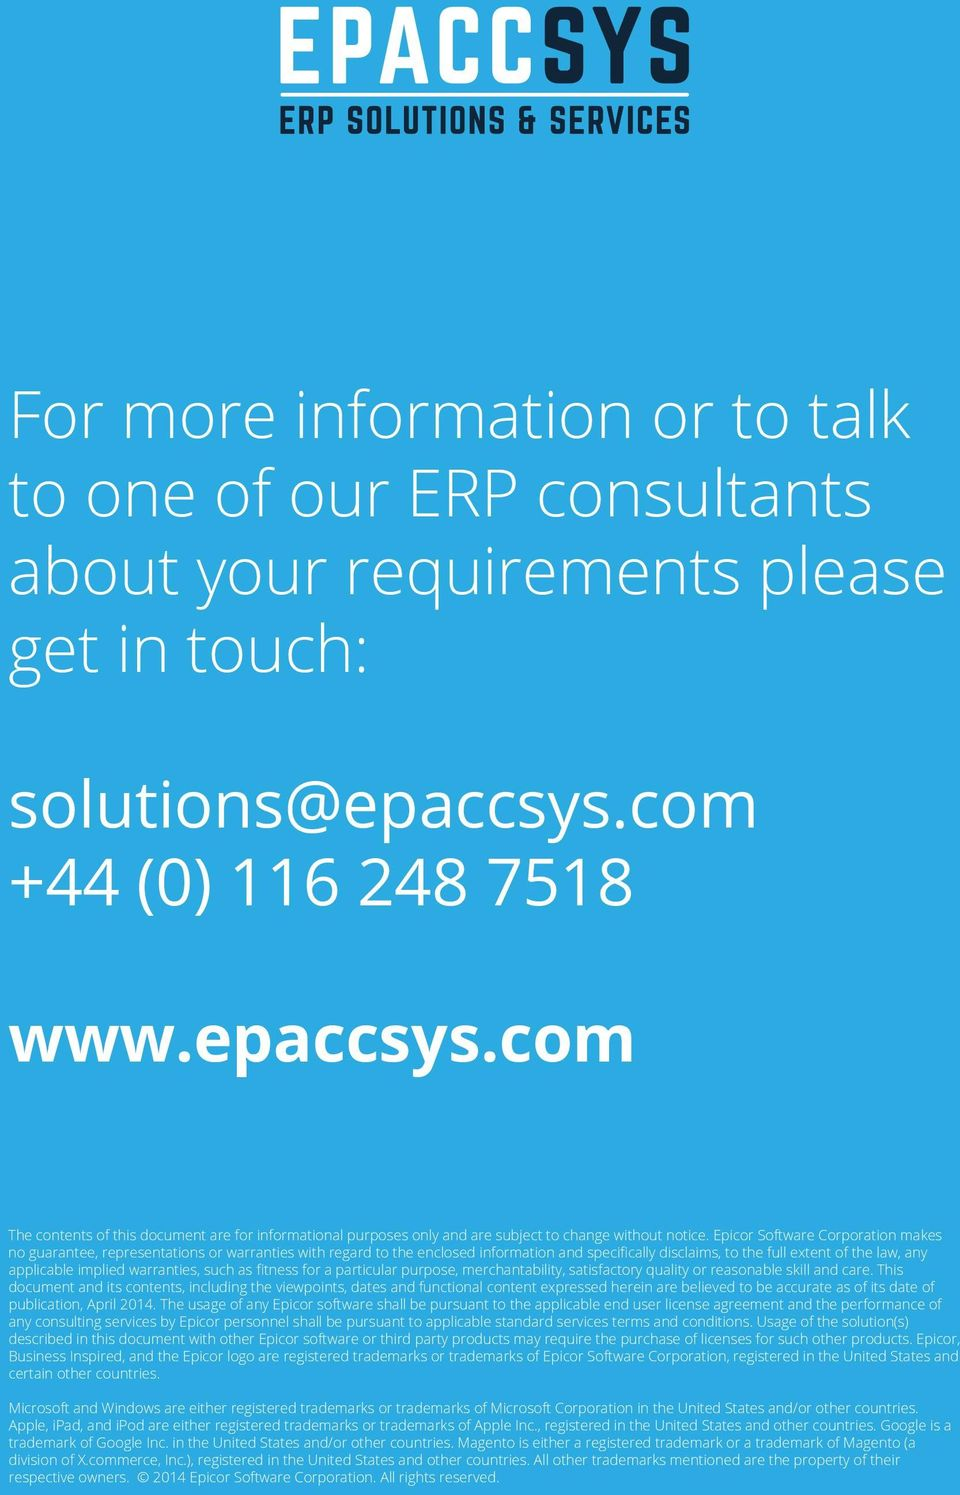 Epicor Software Corporation makes no guarantee, representations or warranties with regard to the enclosed information and specifically disclaims, to the full extent of the law, any applicable implied